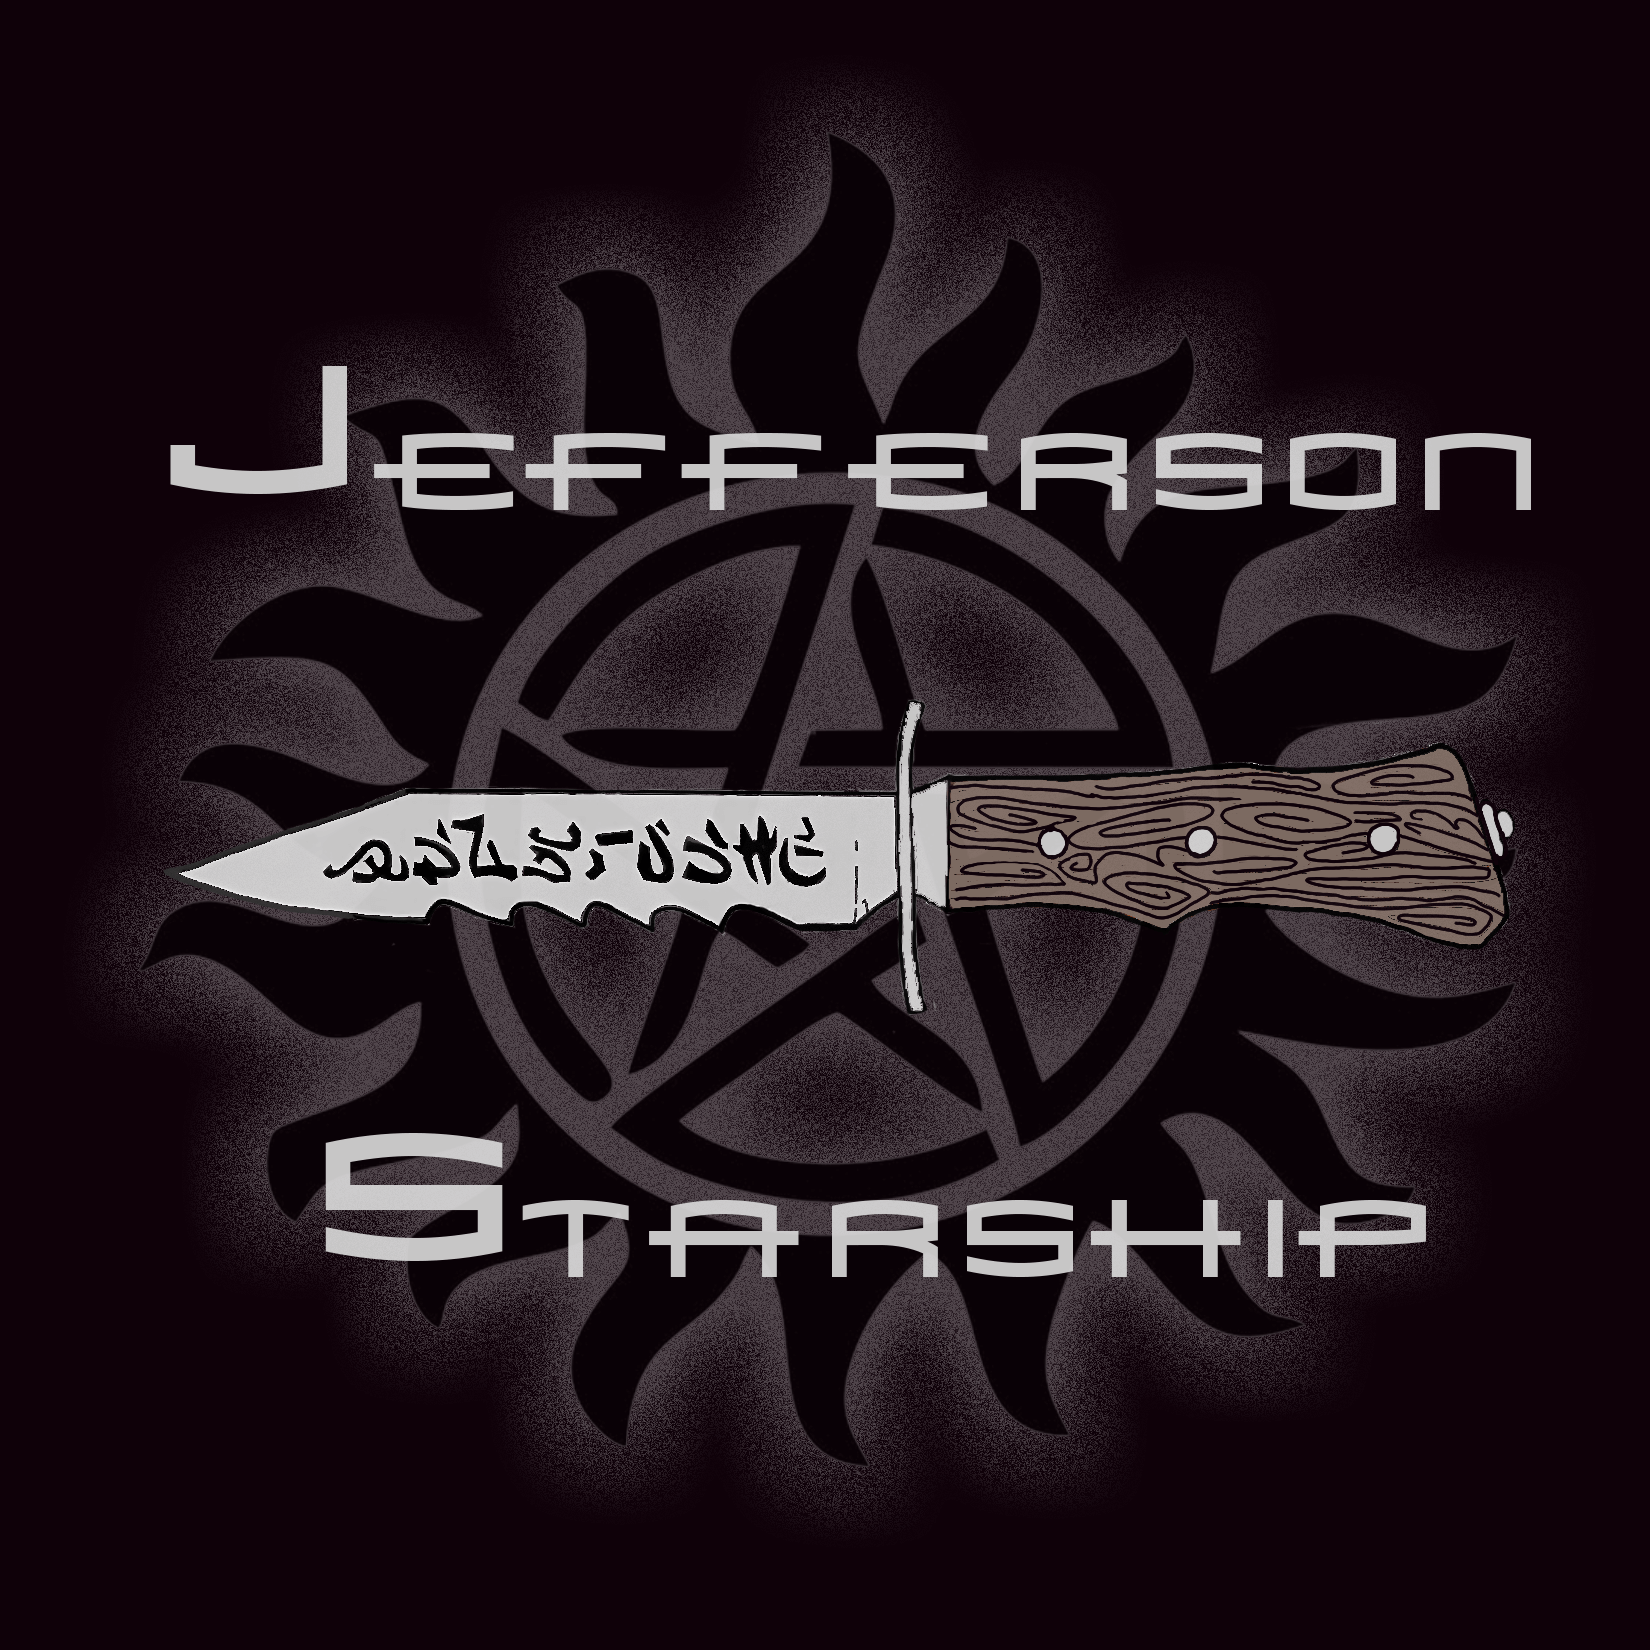 Team Jefferson Starship